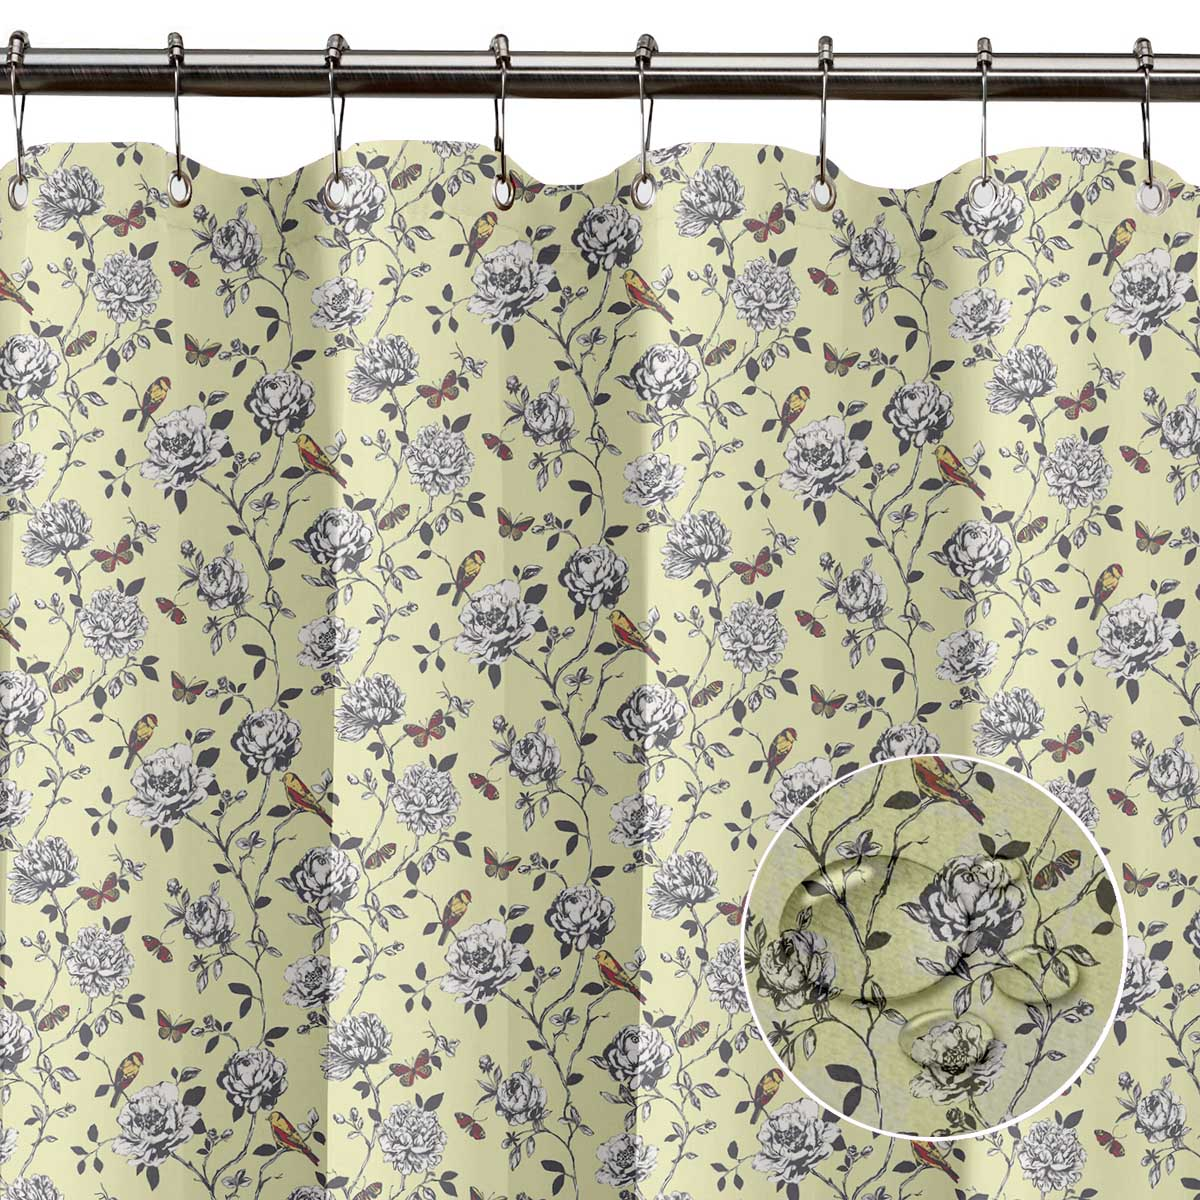 S4Sassy Grey Damask Floral Water Repellent Bath Shower Curtain With-DUQ